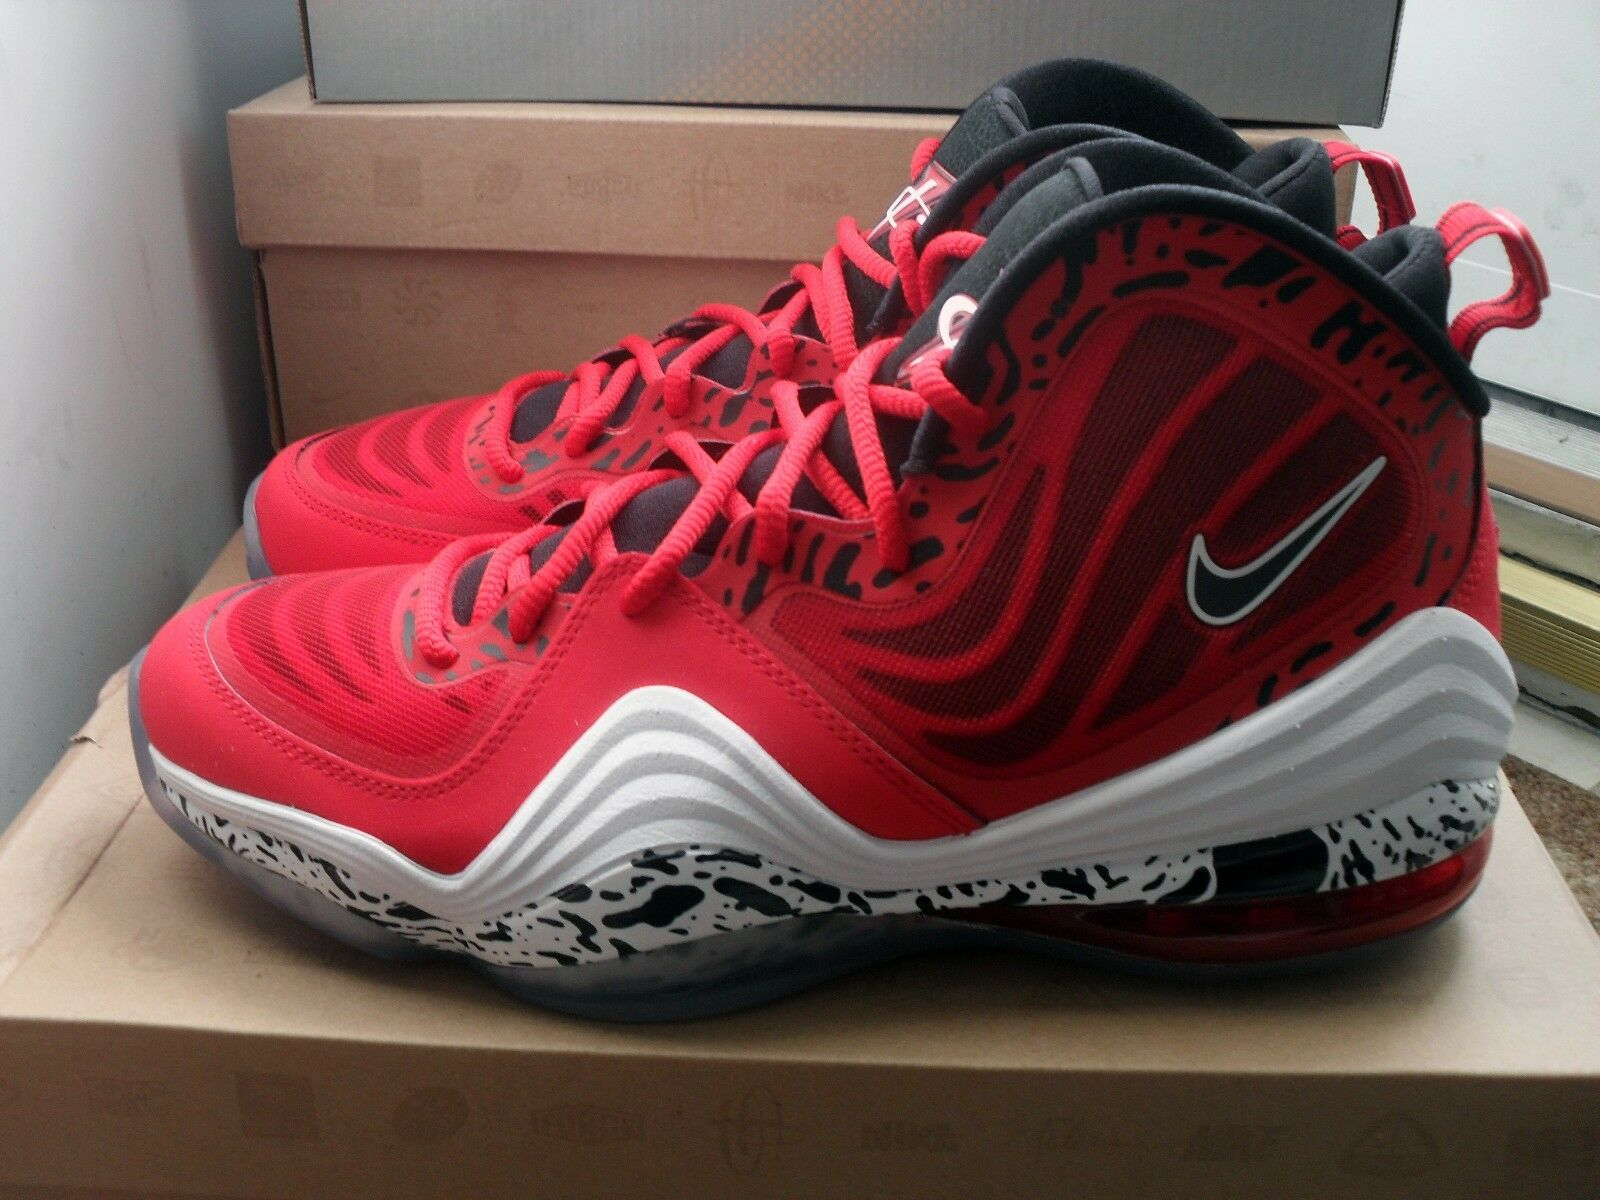 DS Nike Air Penny V 5 RED EAGLE size 10 *FAST SHIPPING* QS iv eagles foamposite